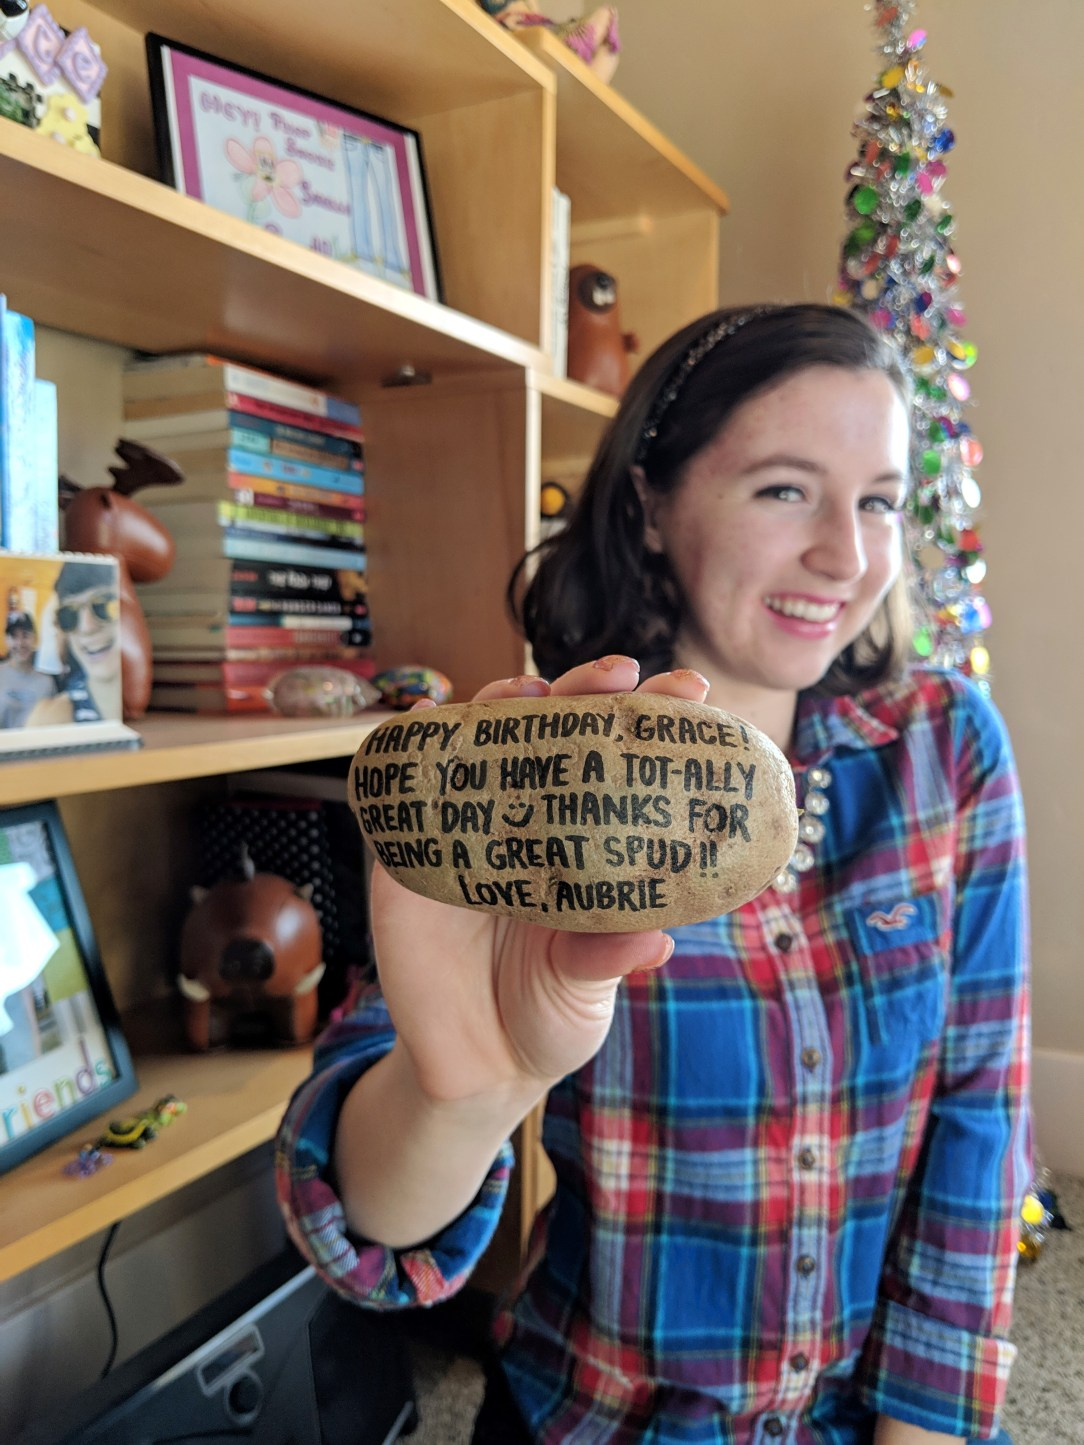 potato gift sent in the mail